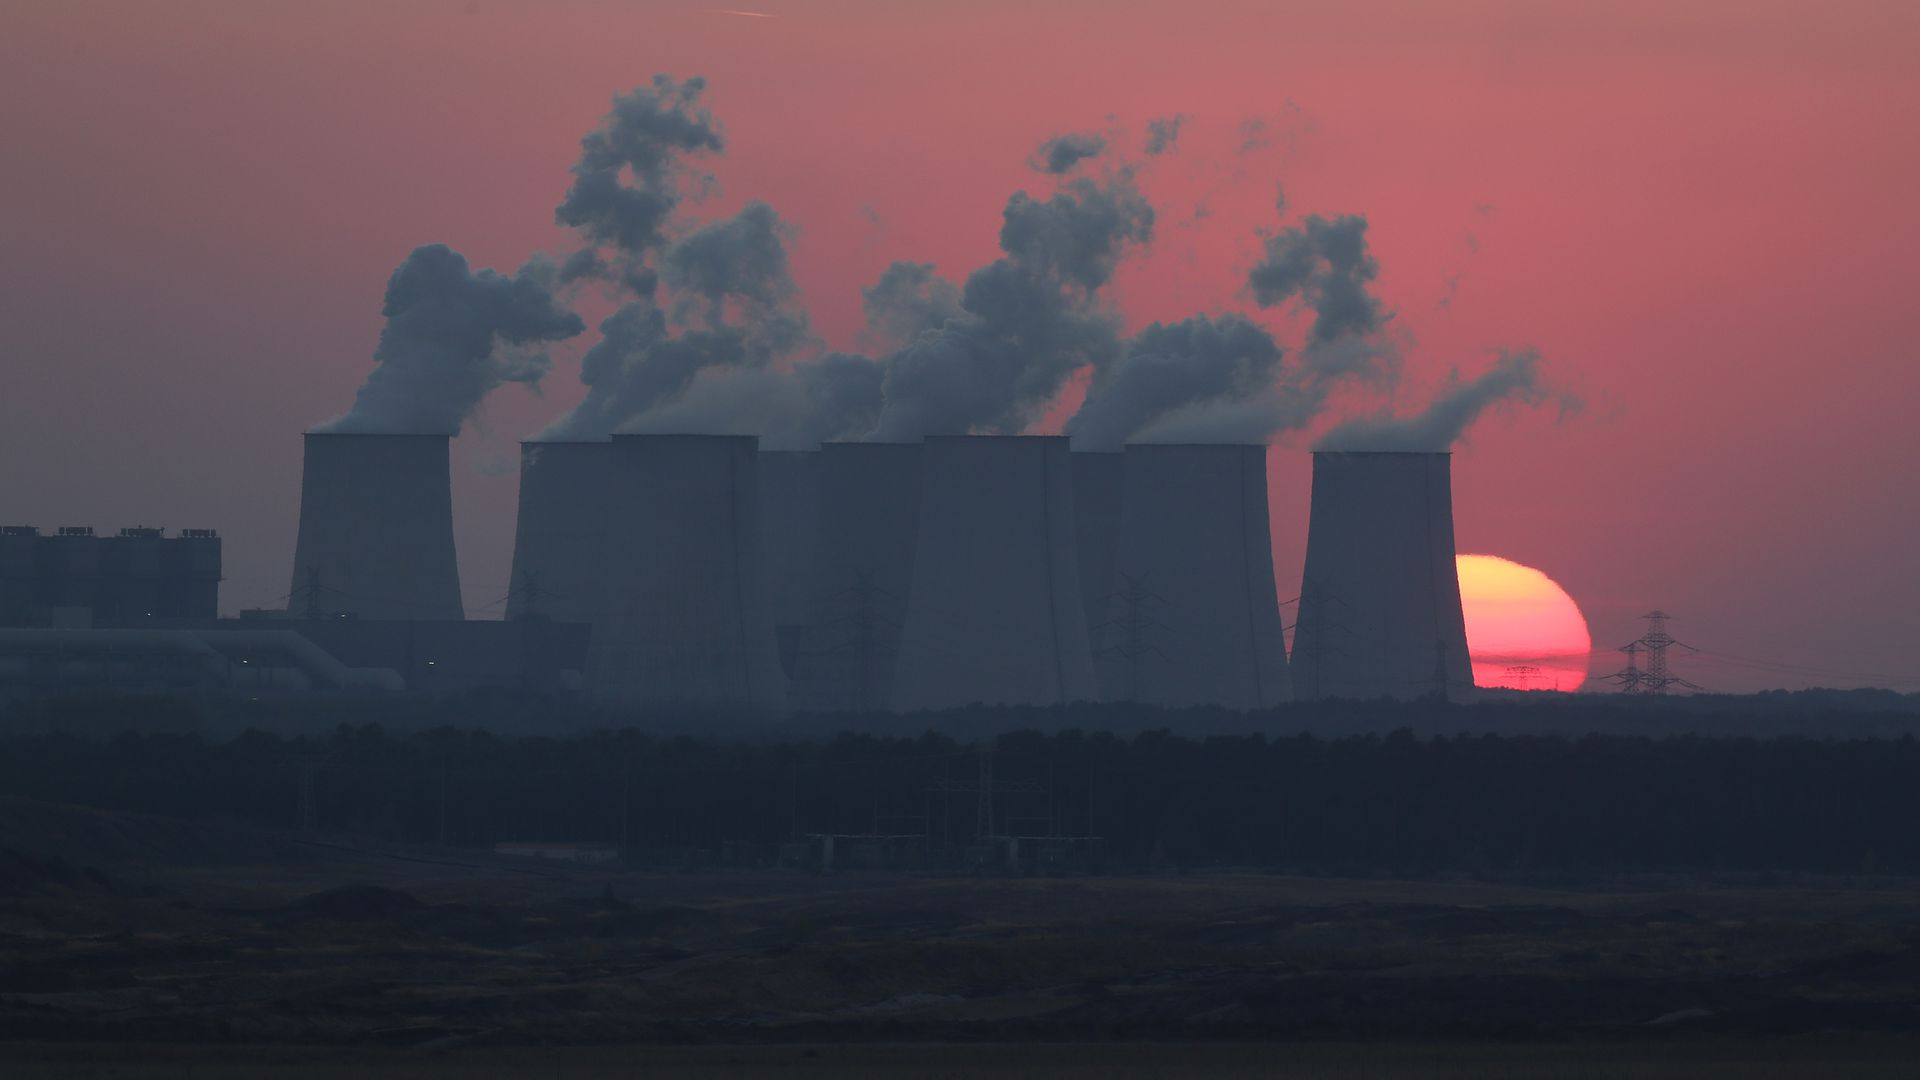 A power plant producing lots of smoke in front of a beautiful, red sunset